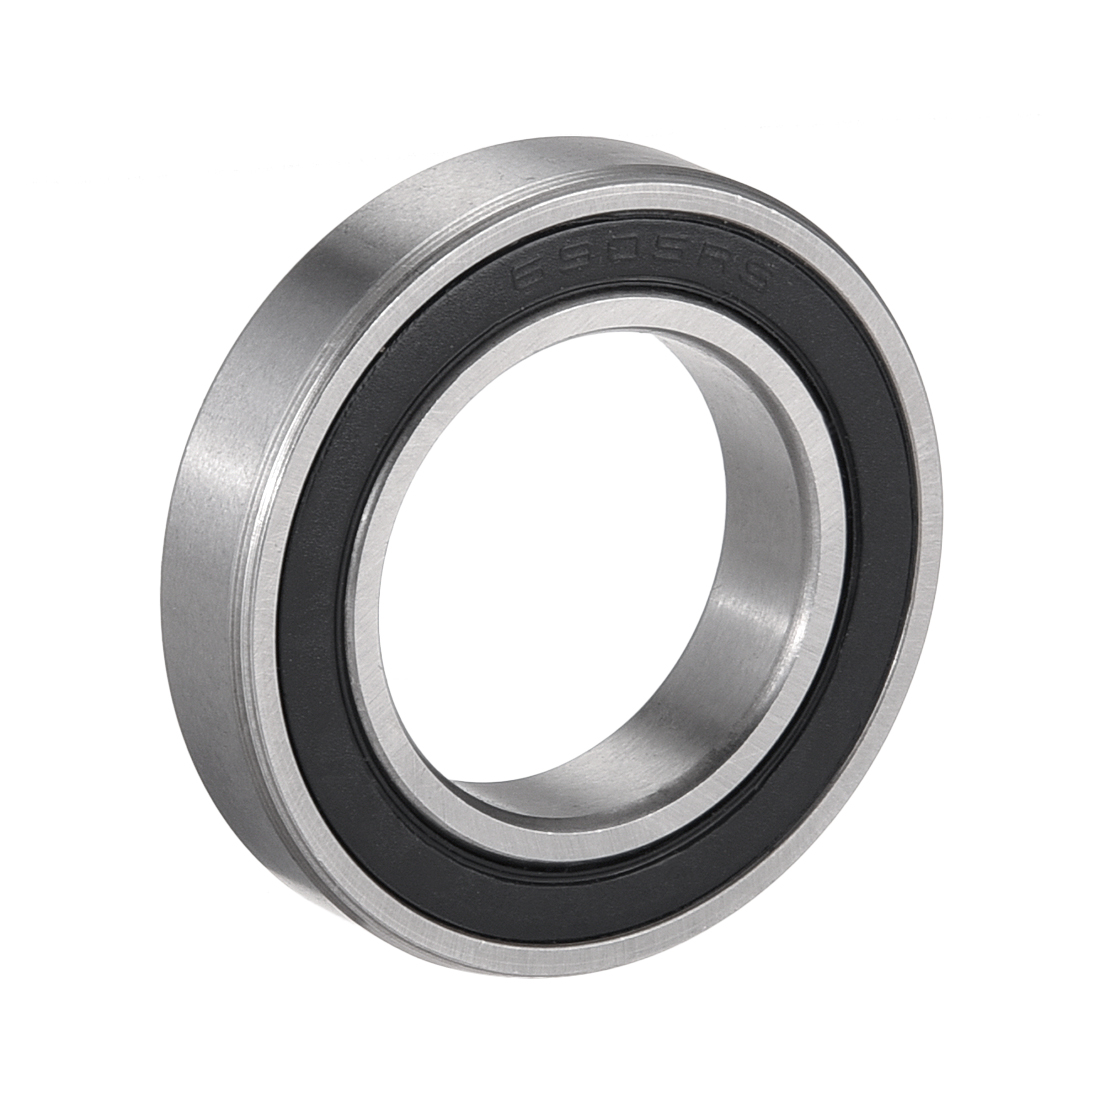 6905-2RS Bearing Deep Groove 6905-2RS Ball Bearings